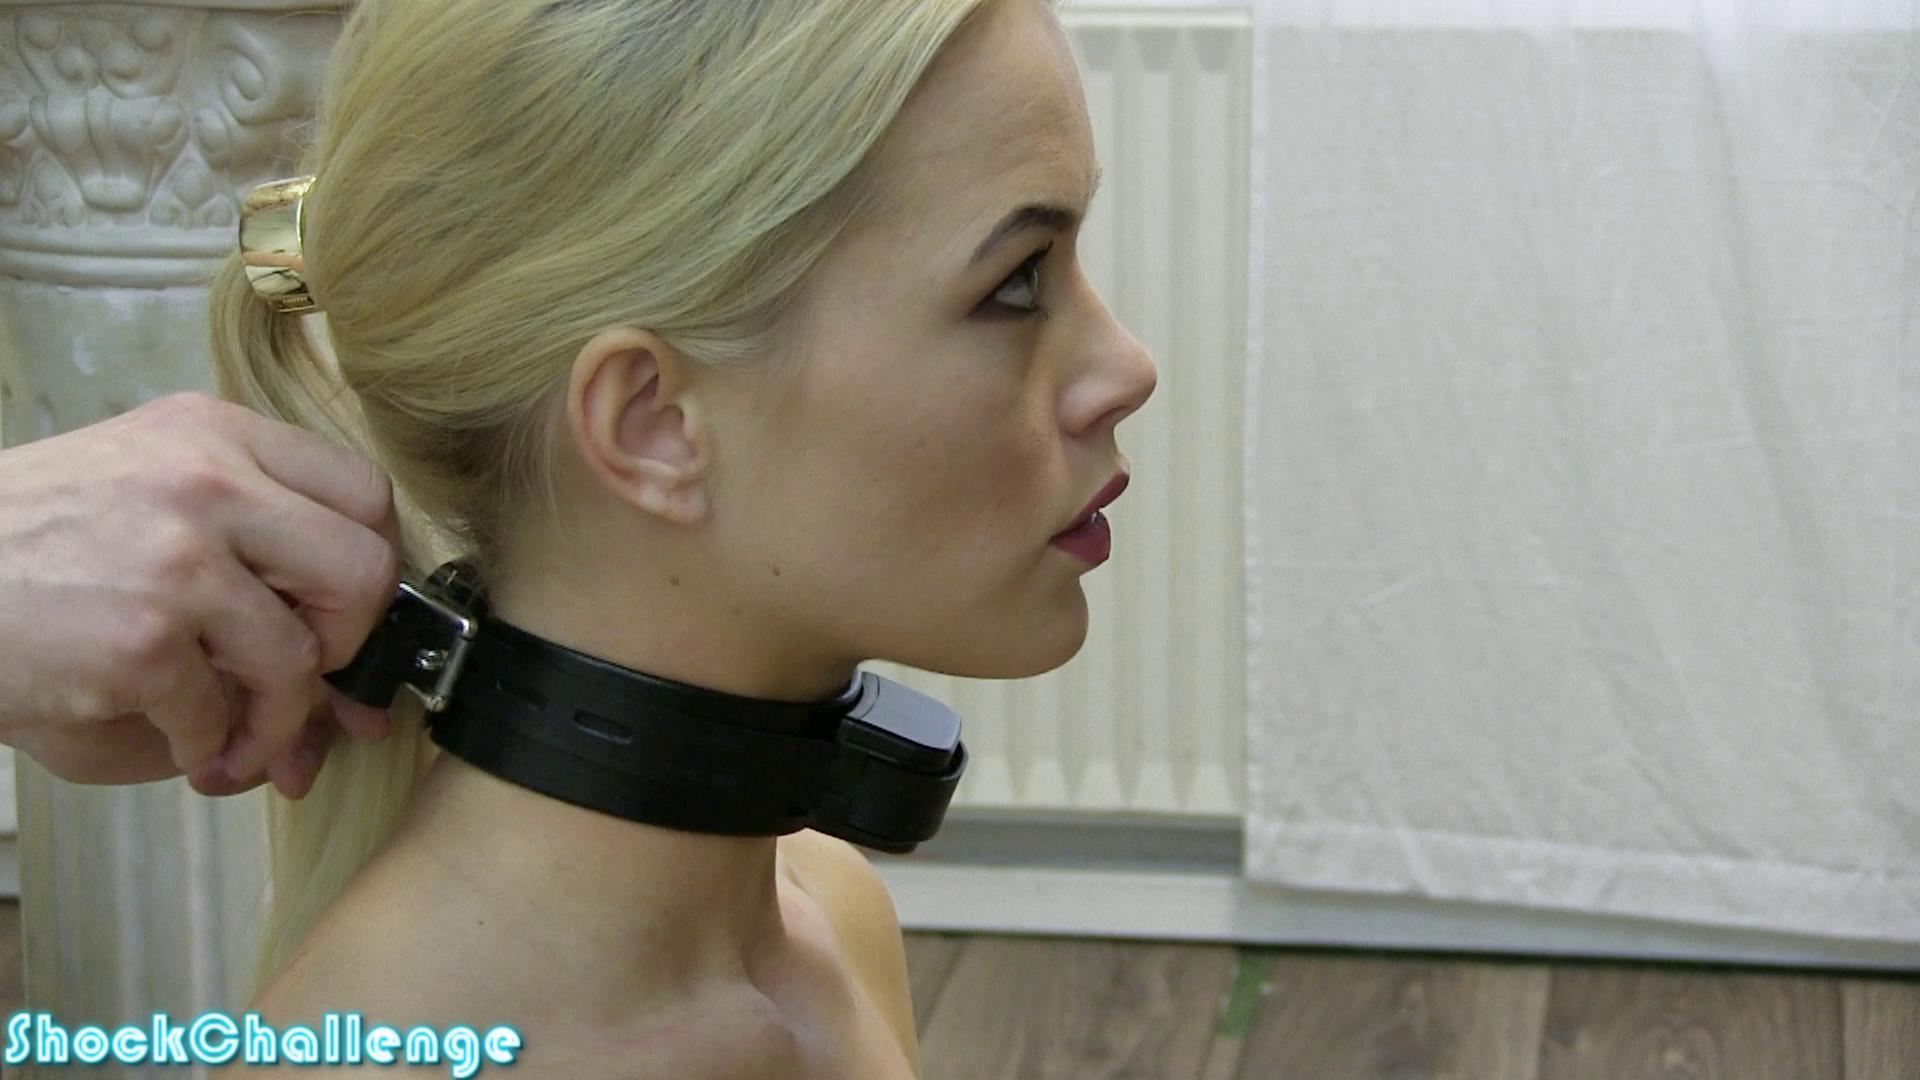 Sophie Shock Collar Up To 12